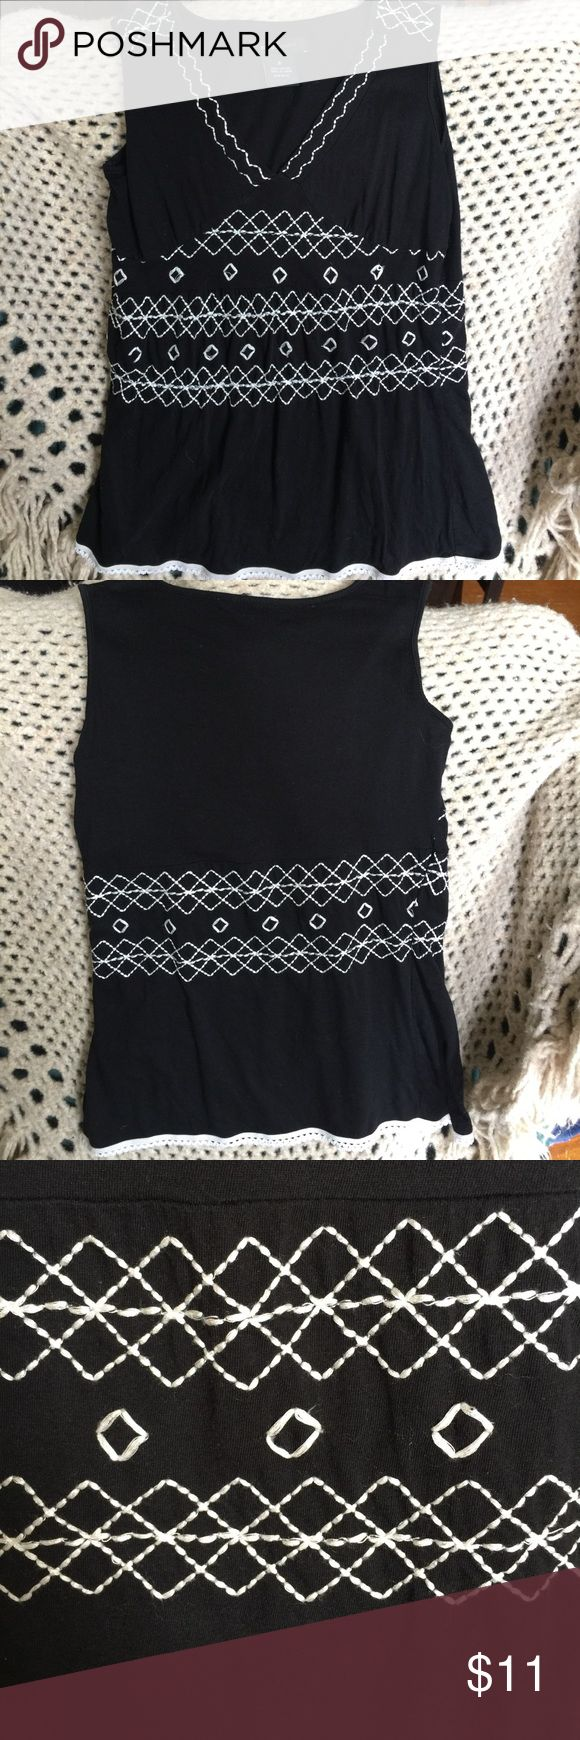 BCBGMaxAzria Top size S BCBGMaxAzria black with white embroidering. Size S. worn only a few times. Plz see pics of embroidering as a few have come loose. Small hole in back near tag. BCBGMaxAzria Tops Tank Tops